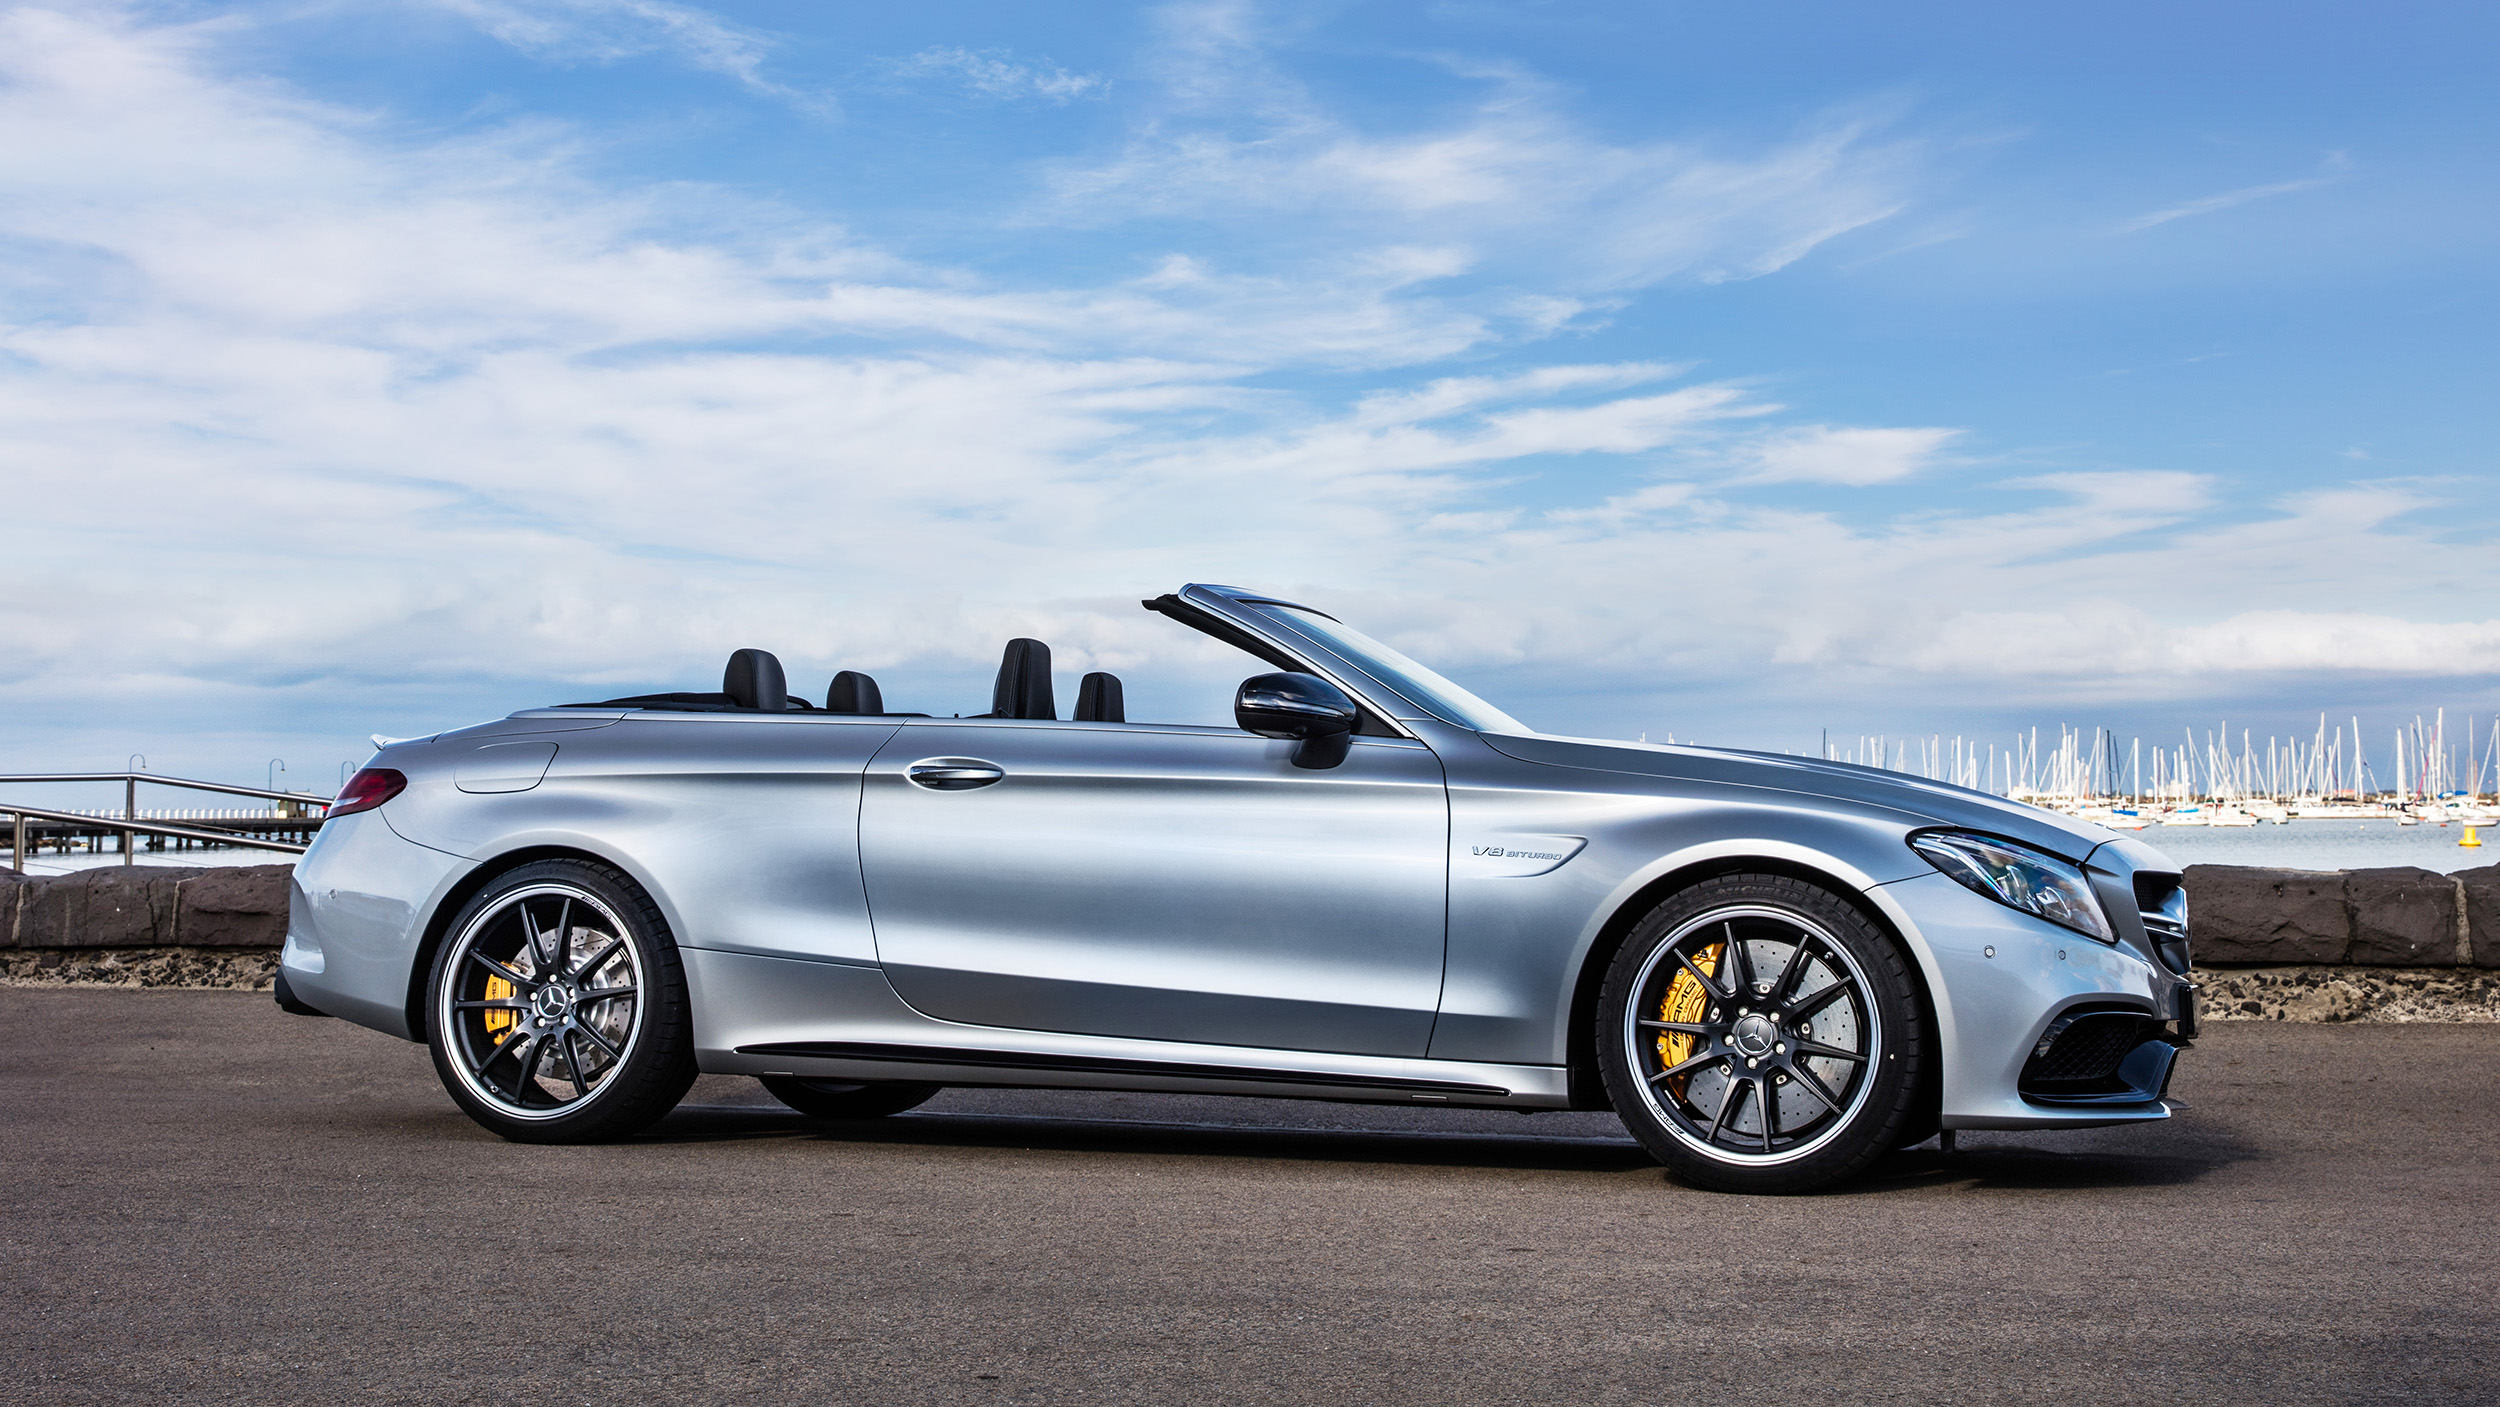 2017 mercedes amg c63 s cabriolet review photos caradvice. Black Bedroom Furniture Sets. Home Design Ideas